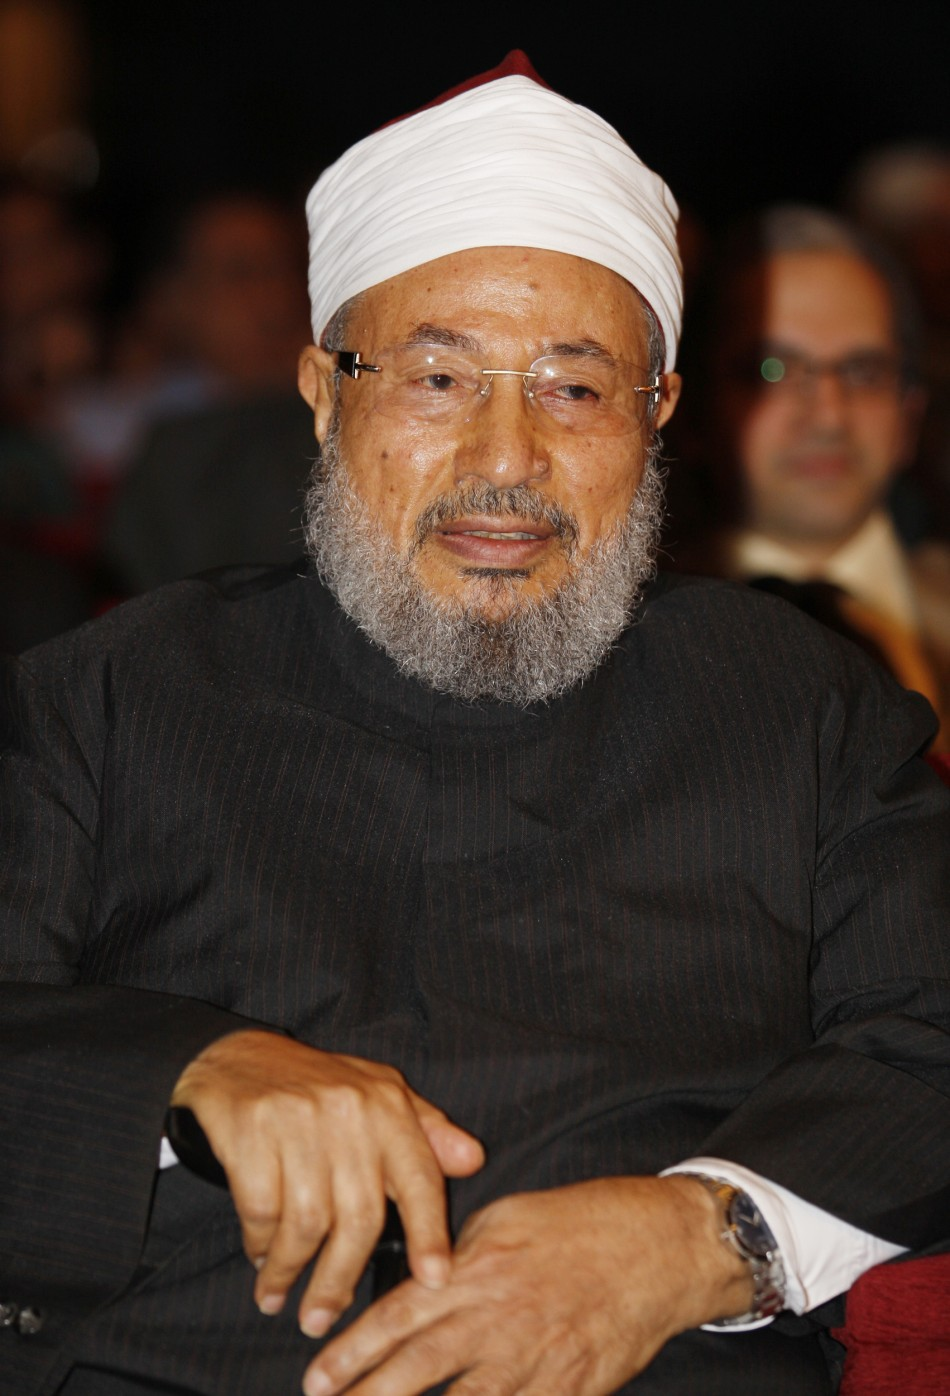 Egyptian-born cleric Sheikh Yussef al-Qaradawi attends a forum in Doha